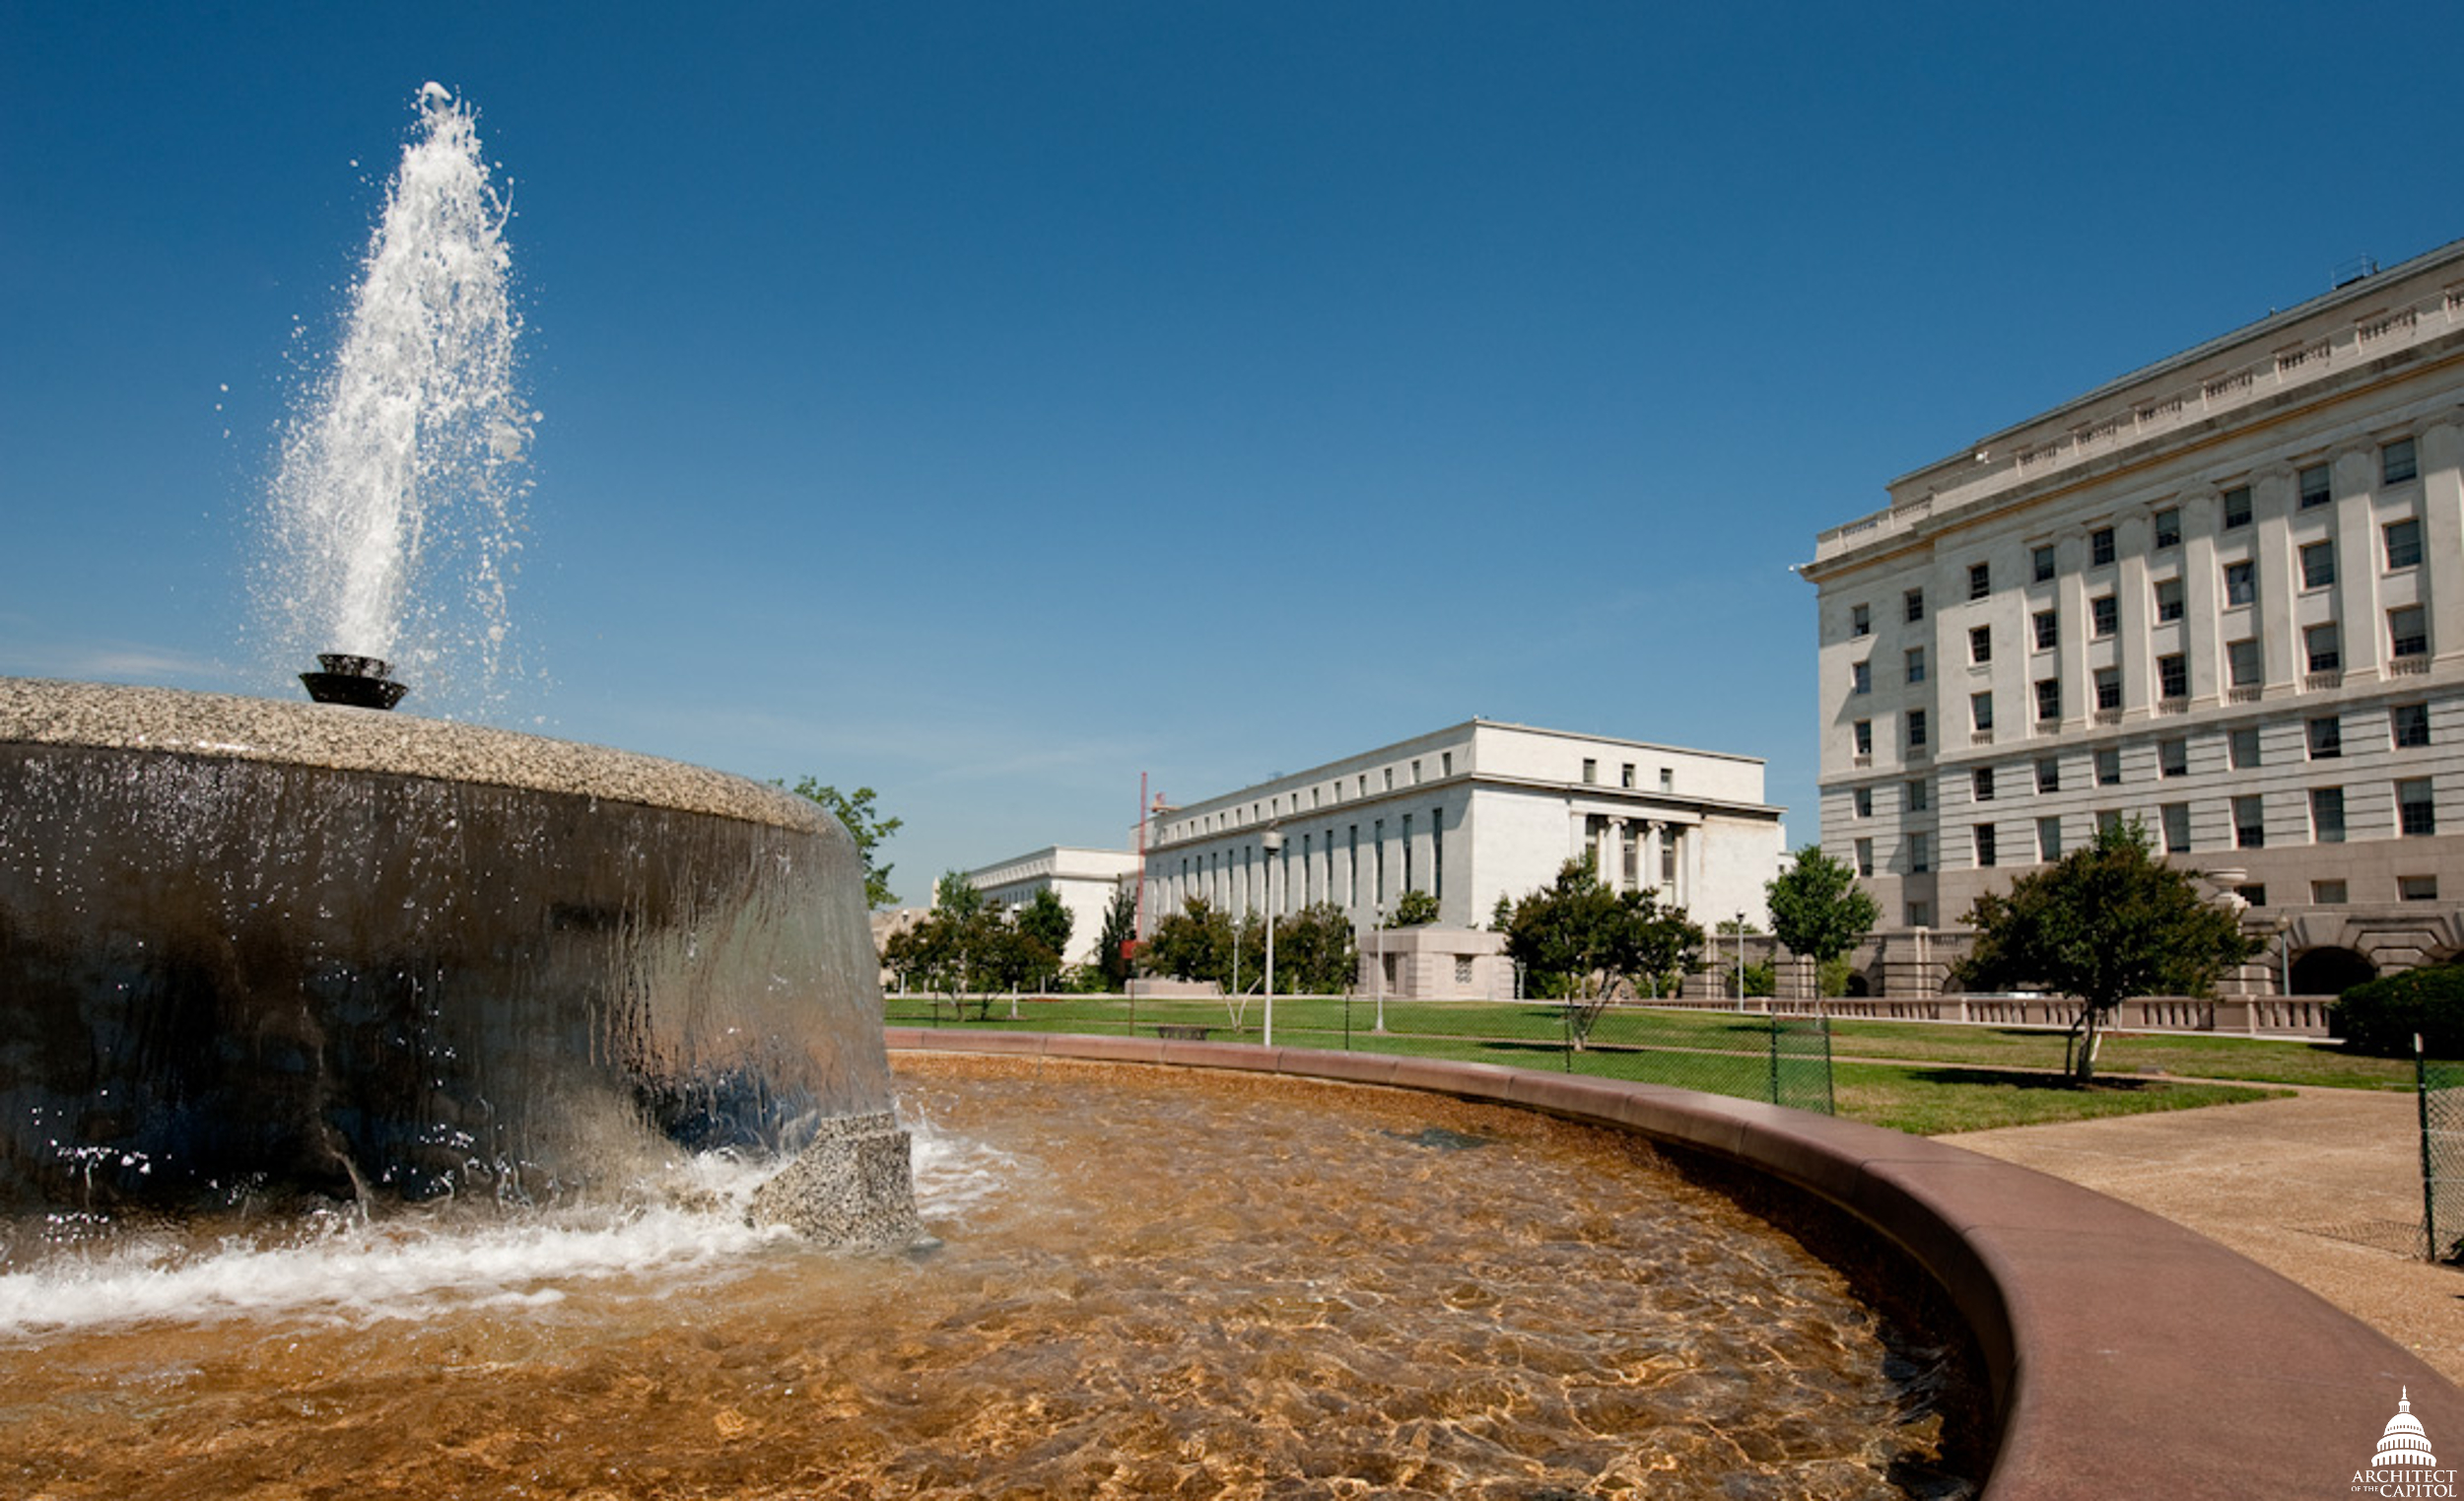 House Office Building garage fountain.